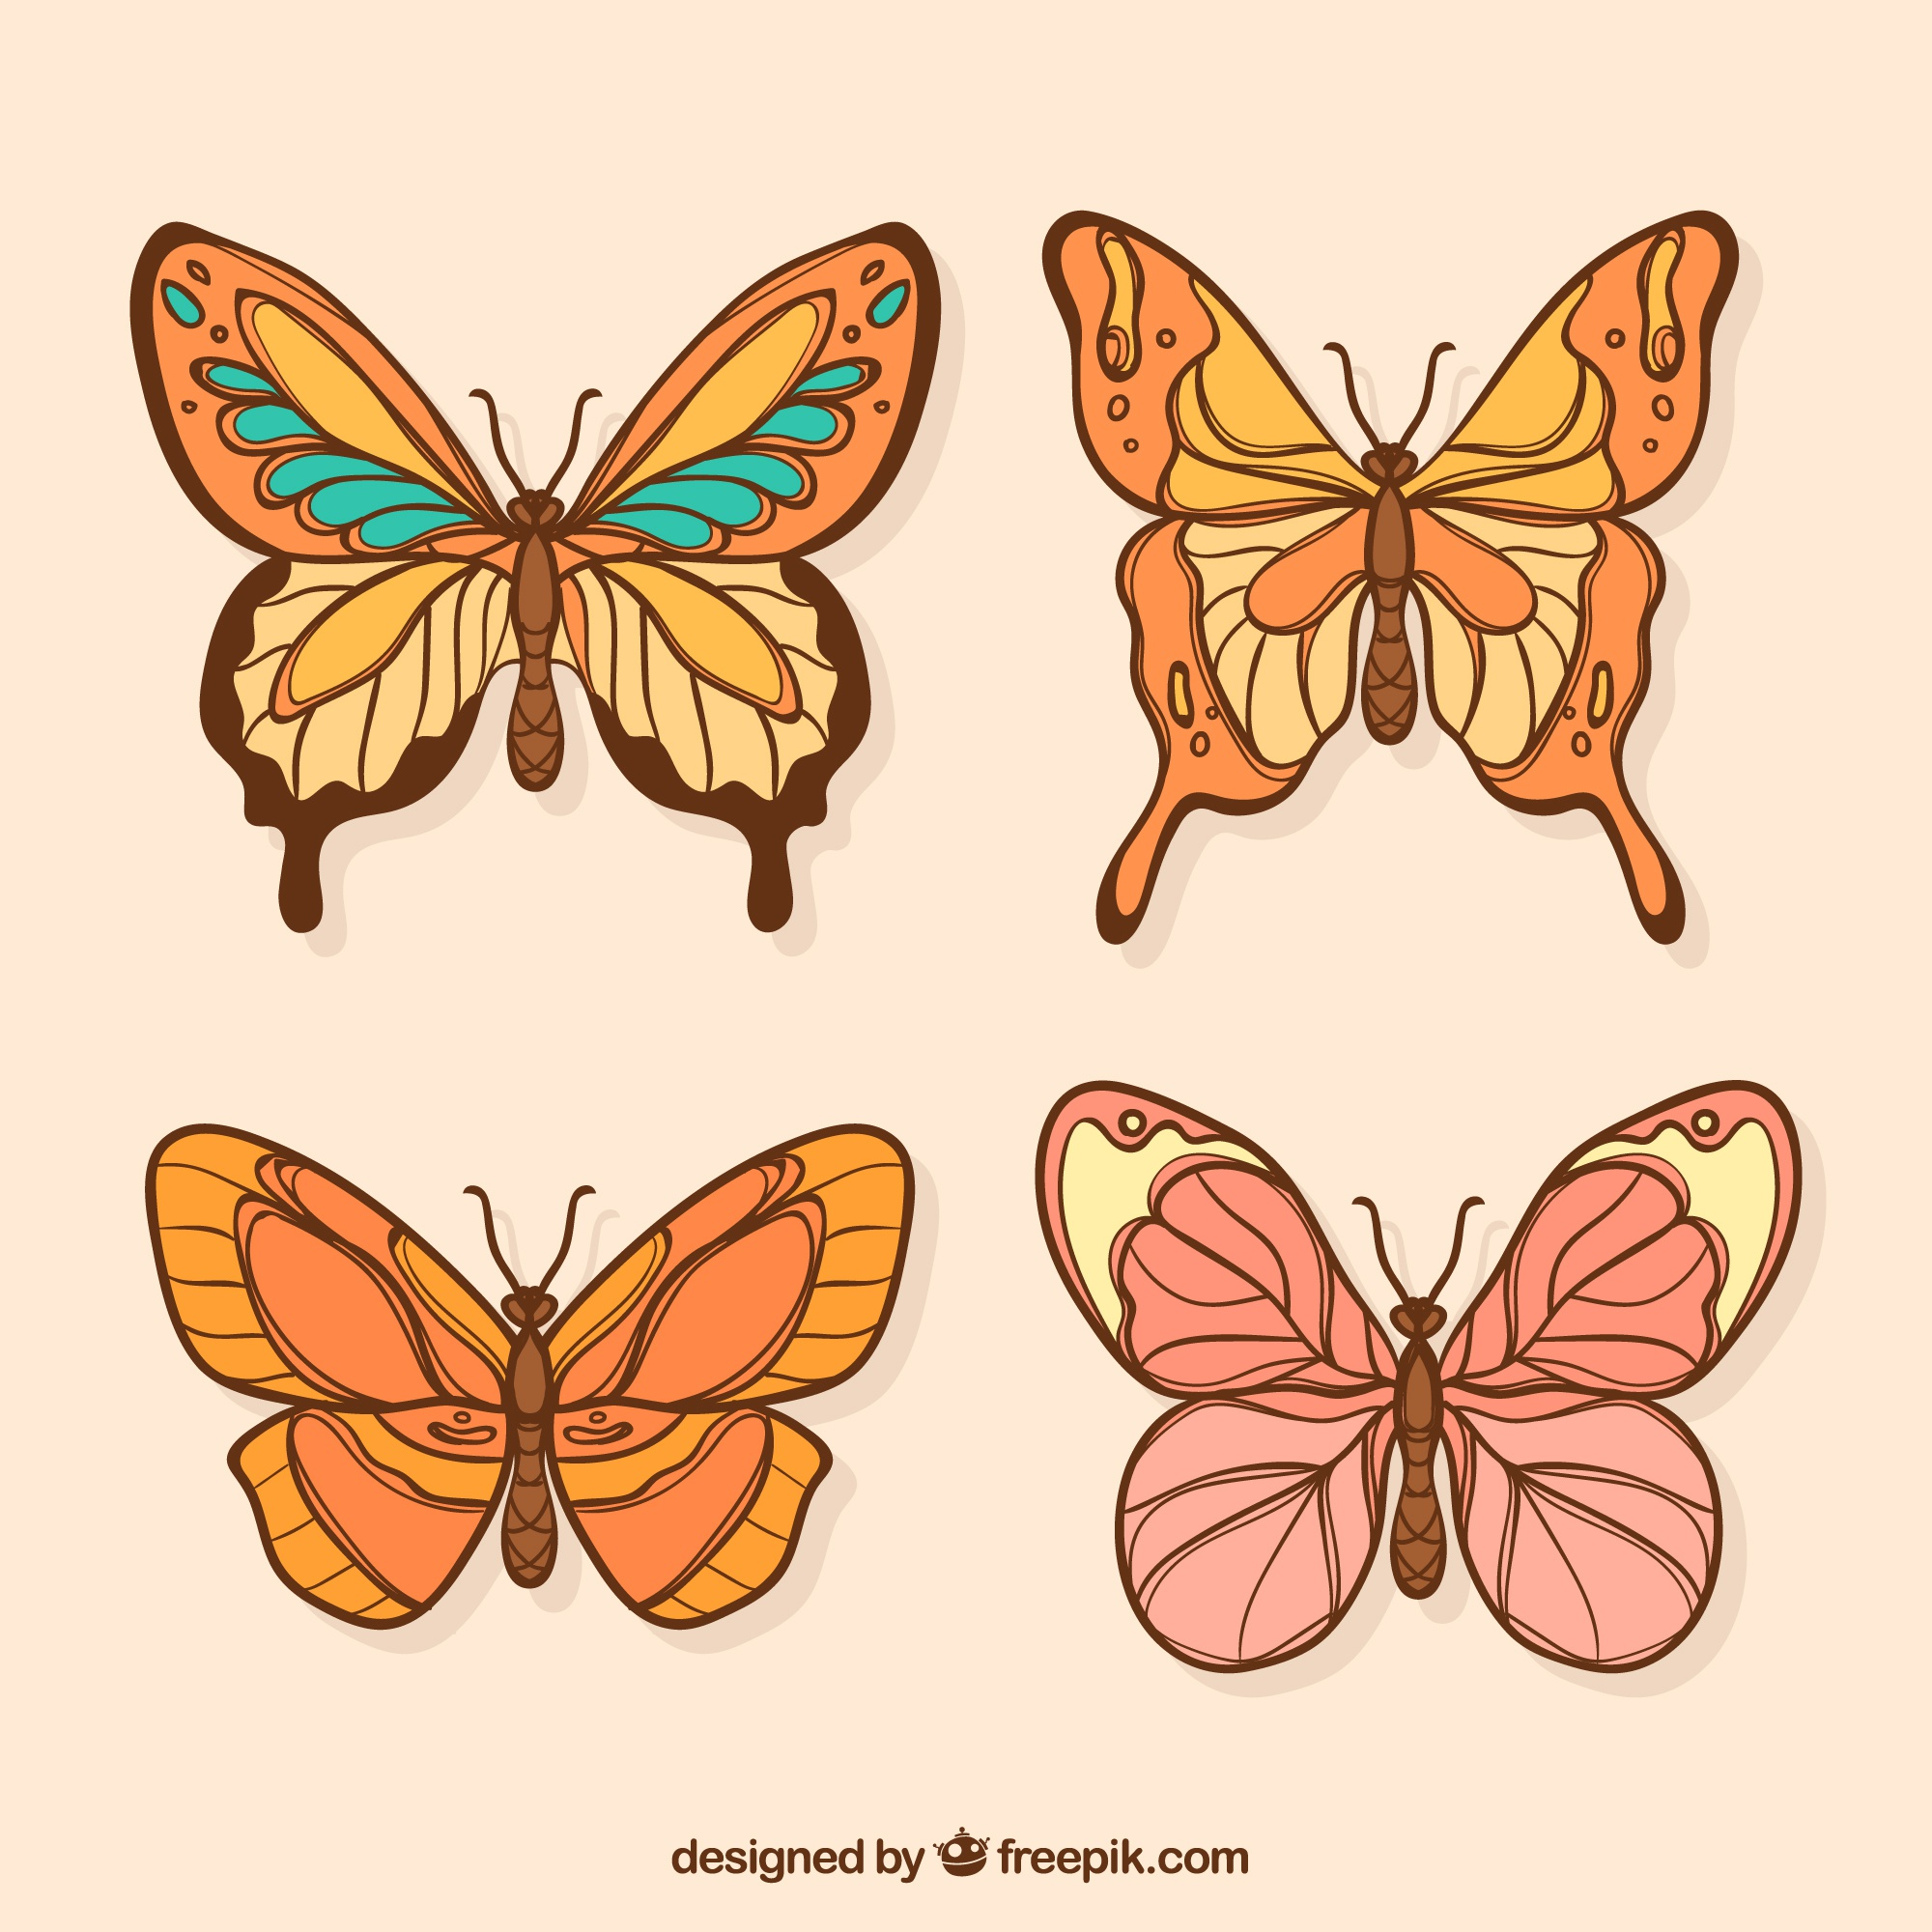 Colored butterflies with variety of designs